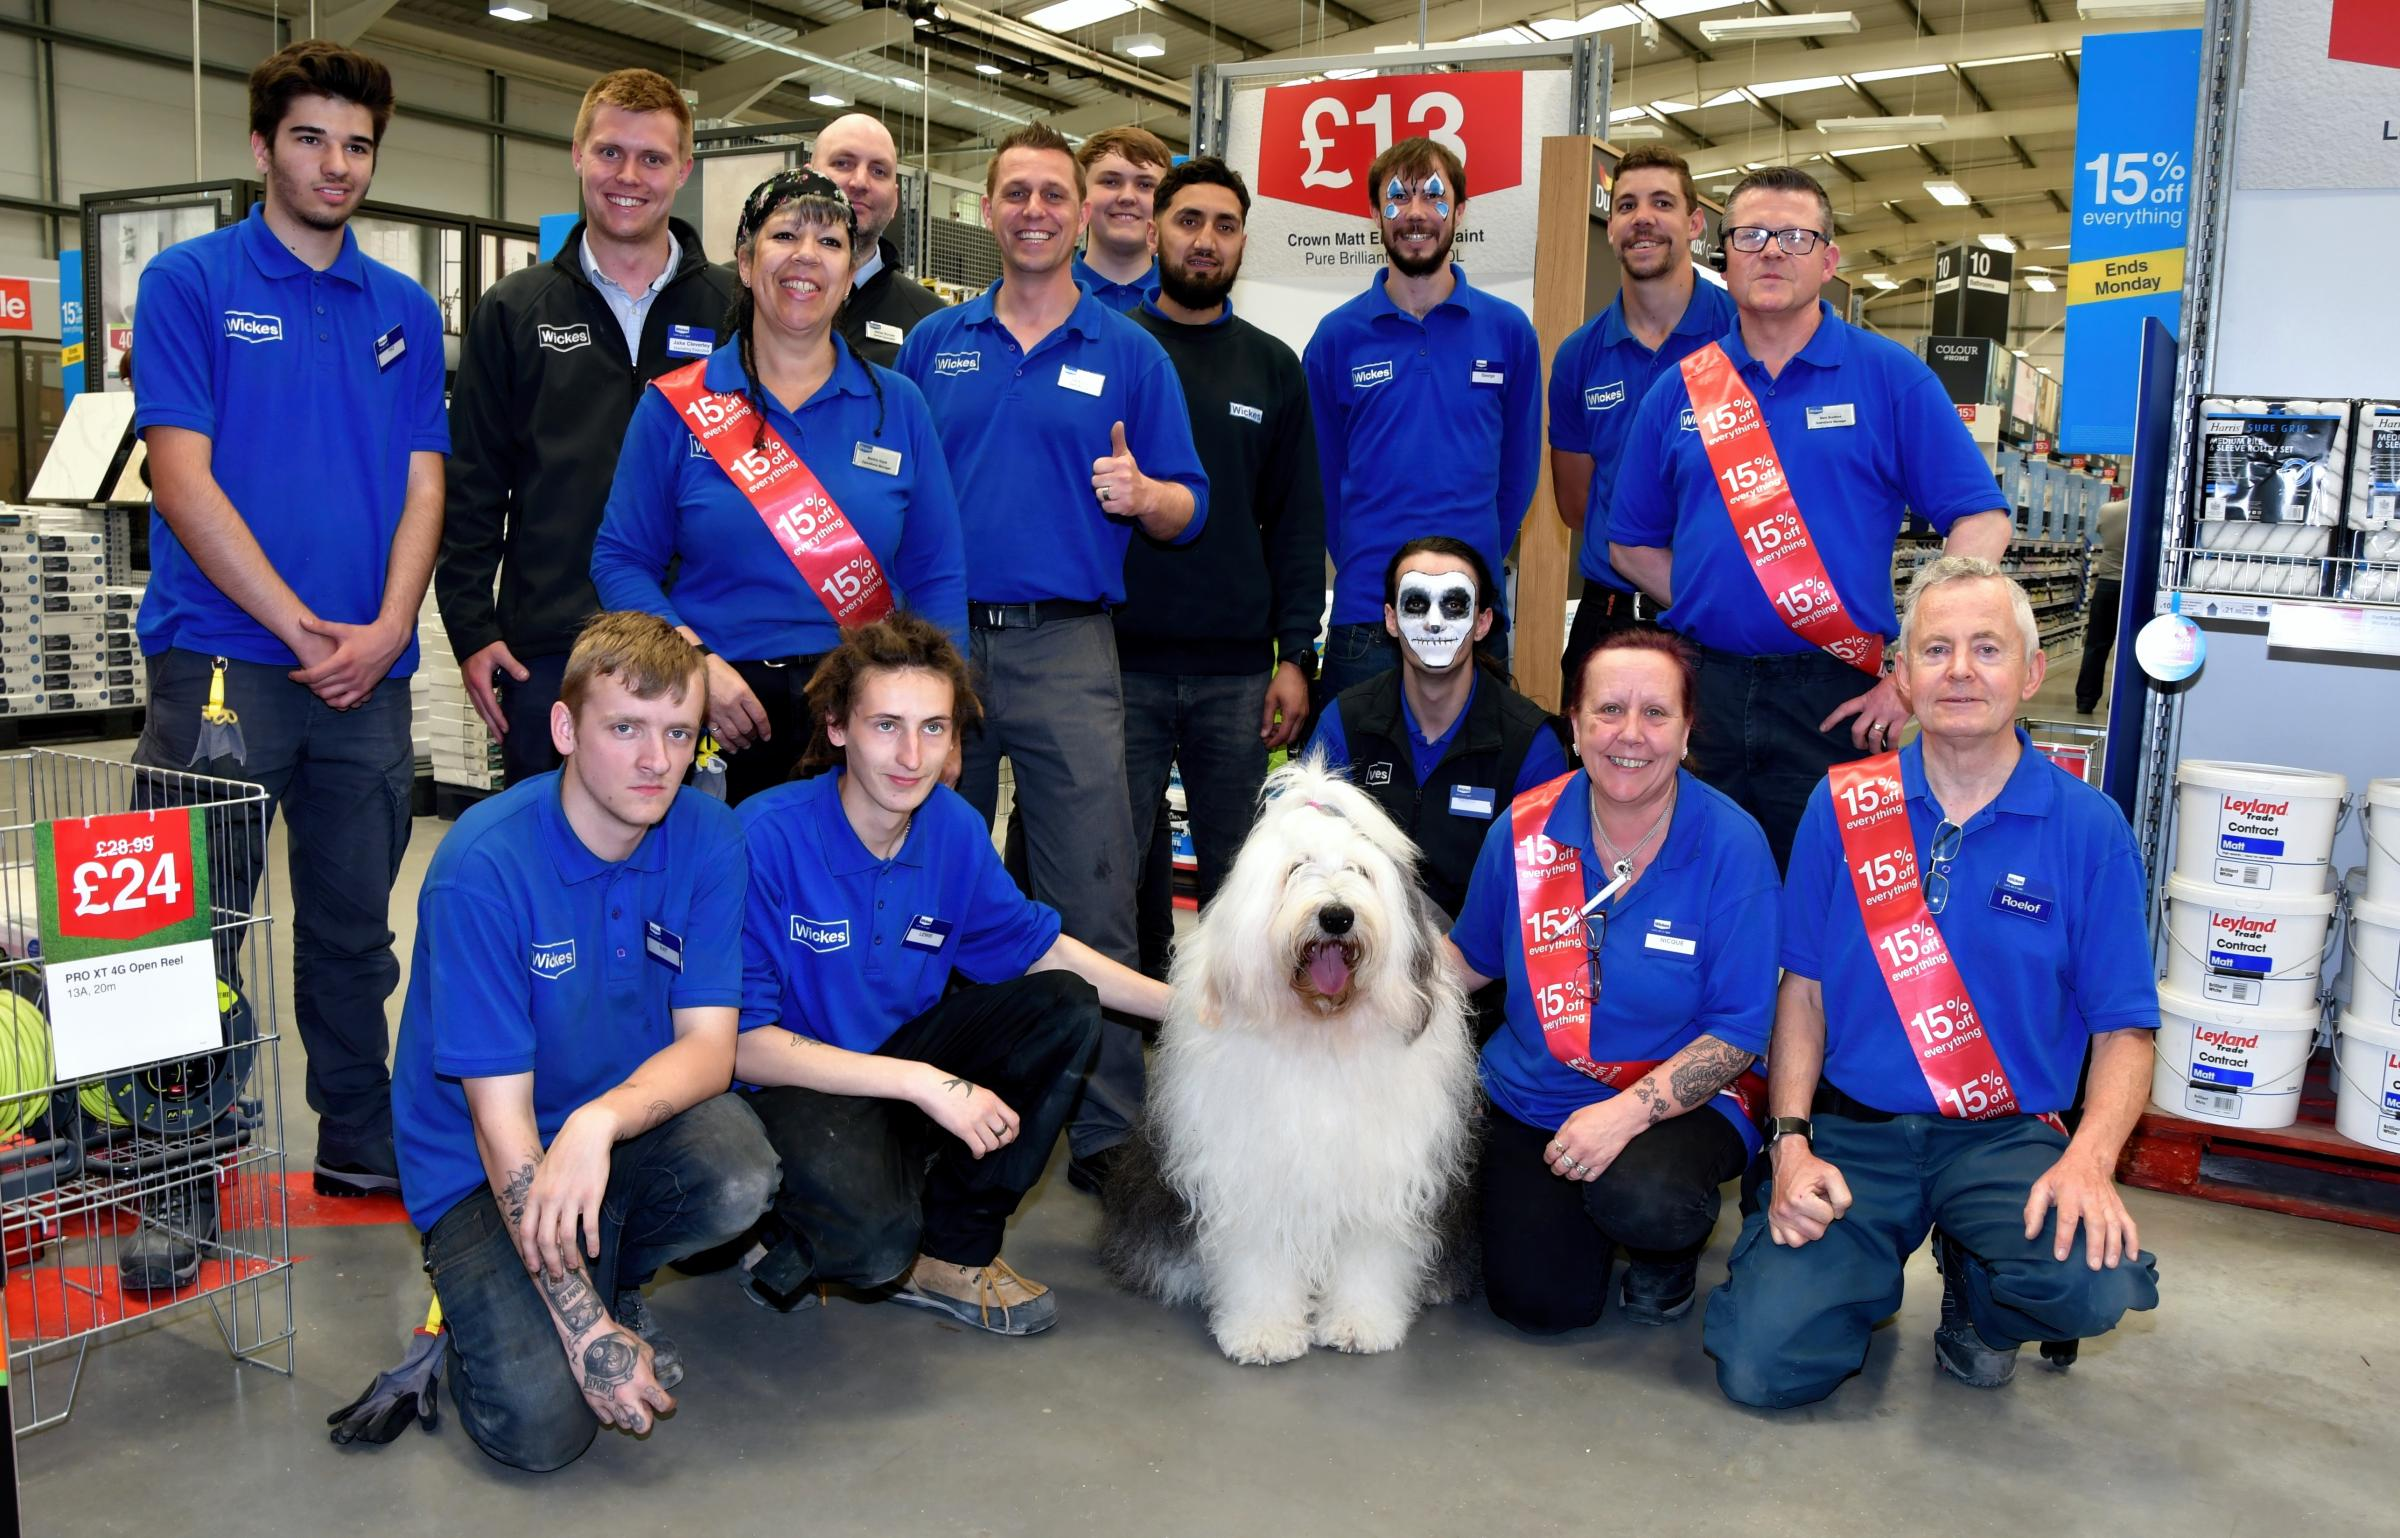 Dulux Dog The Guest At Reopening Of Wickes Store Basingstoke Gazette